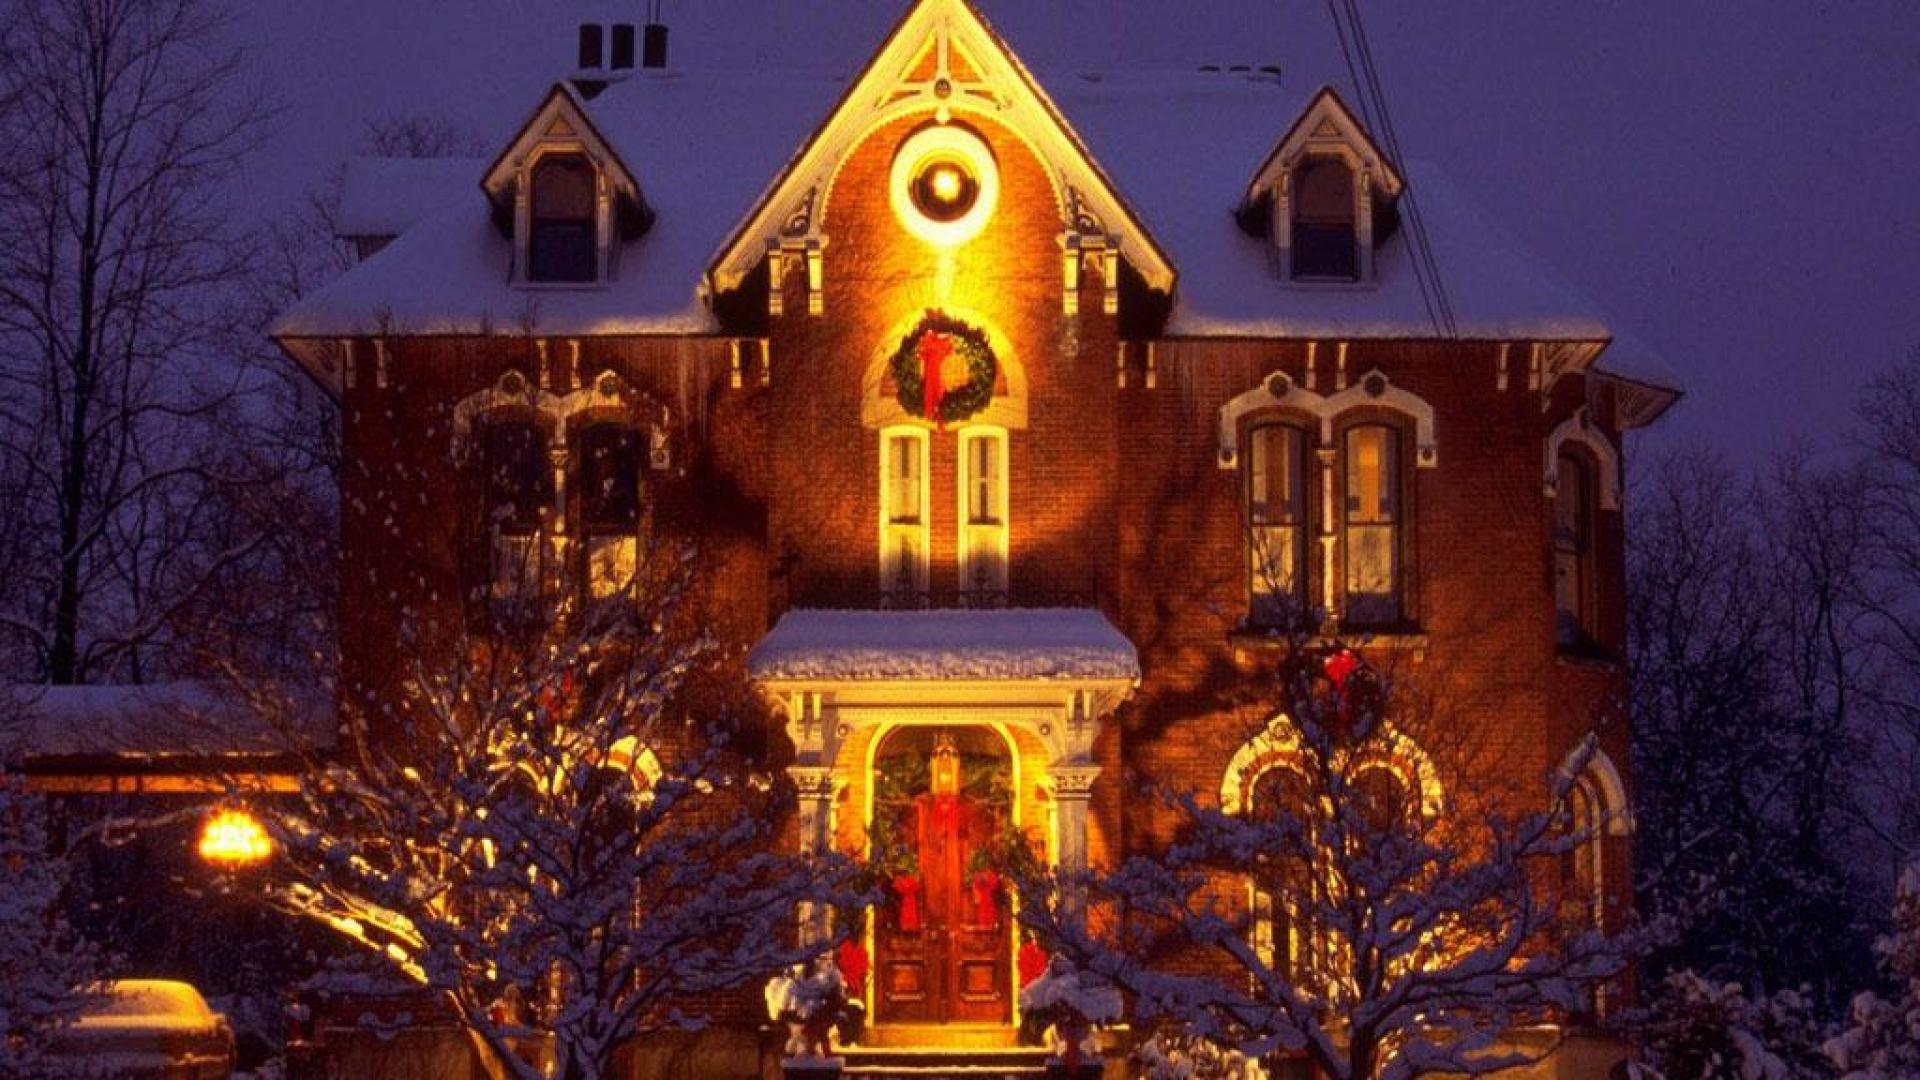 Outdoor christmas decorations hd wallpaper high for Quality outdoor christmas decorations